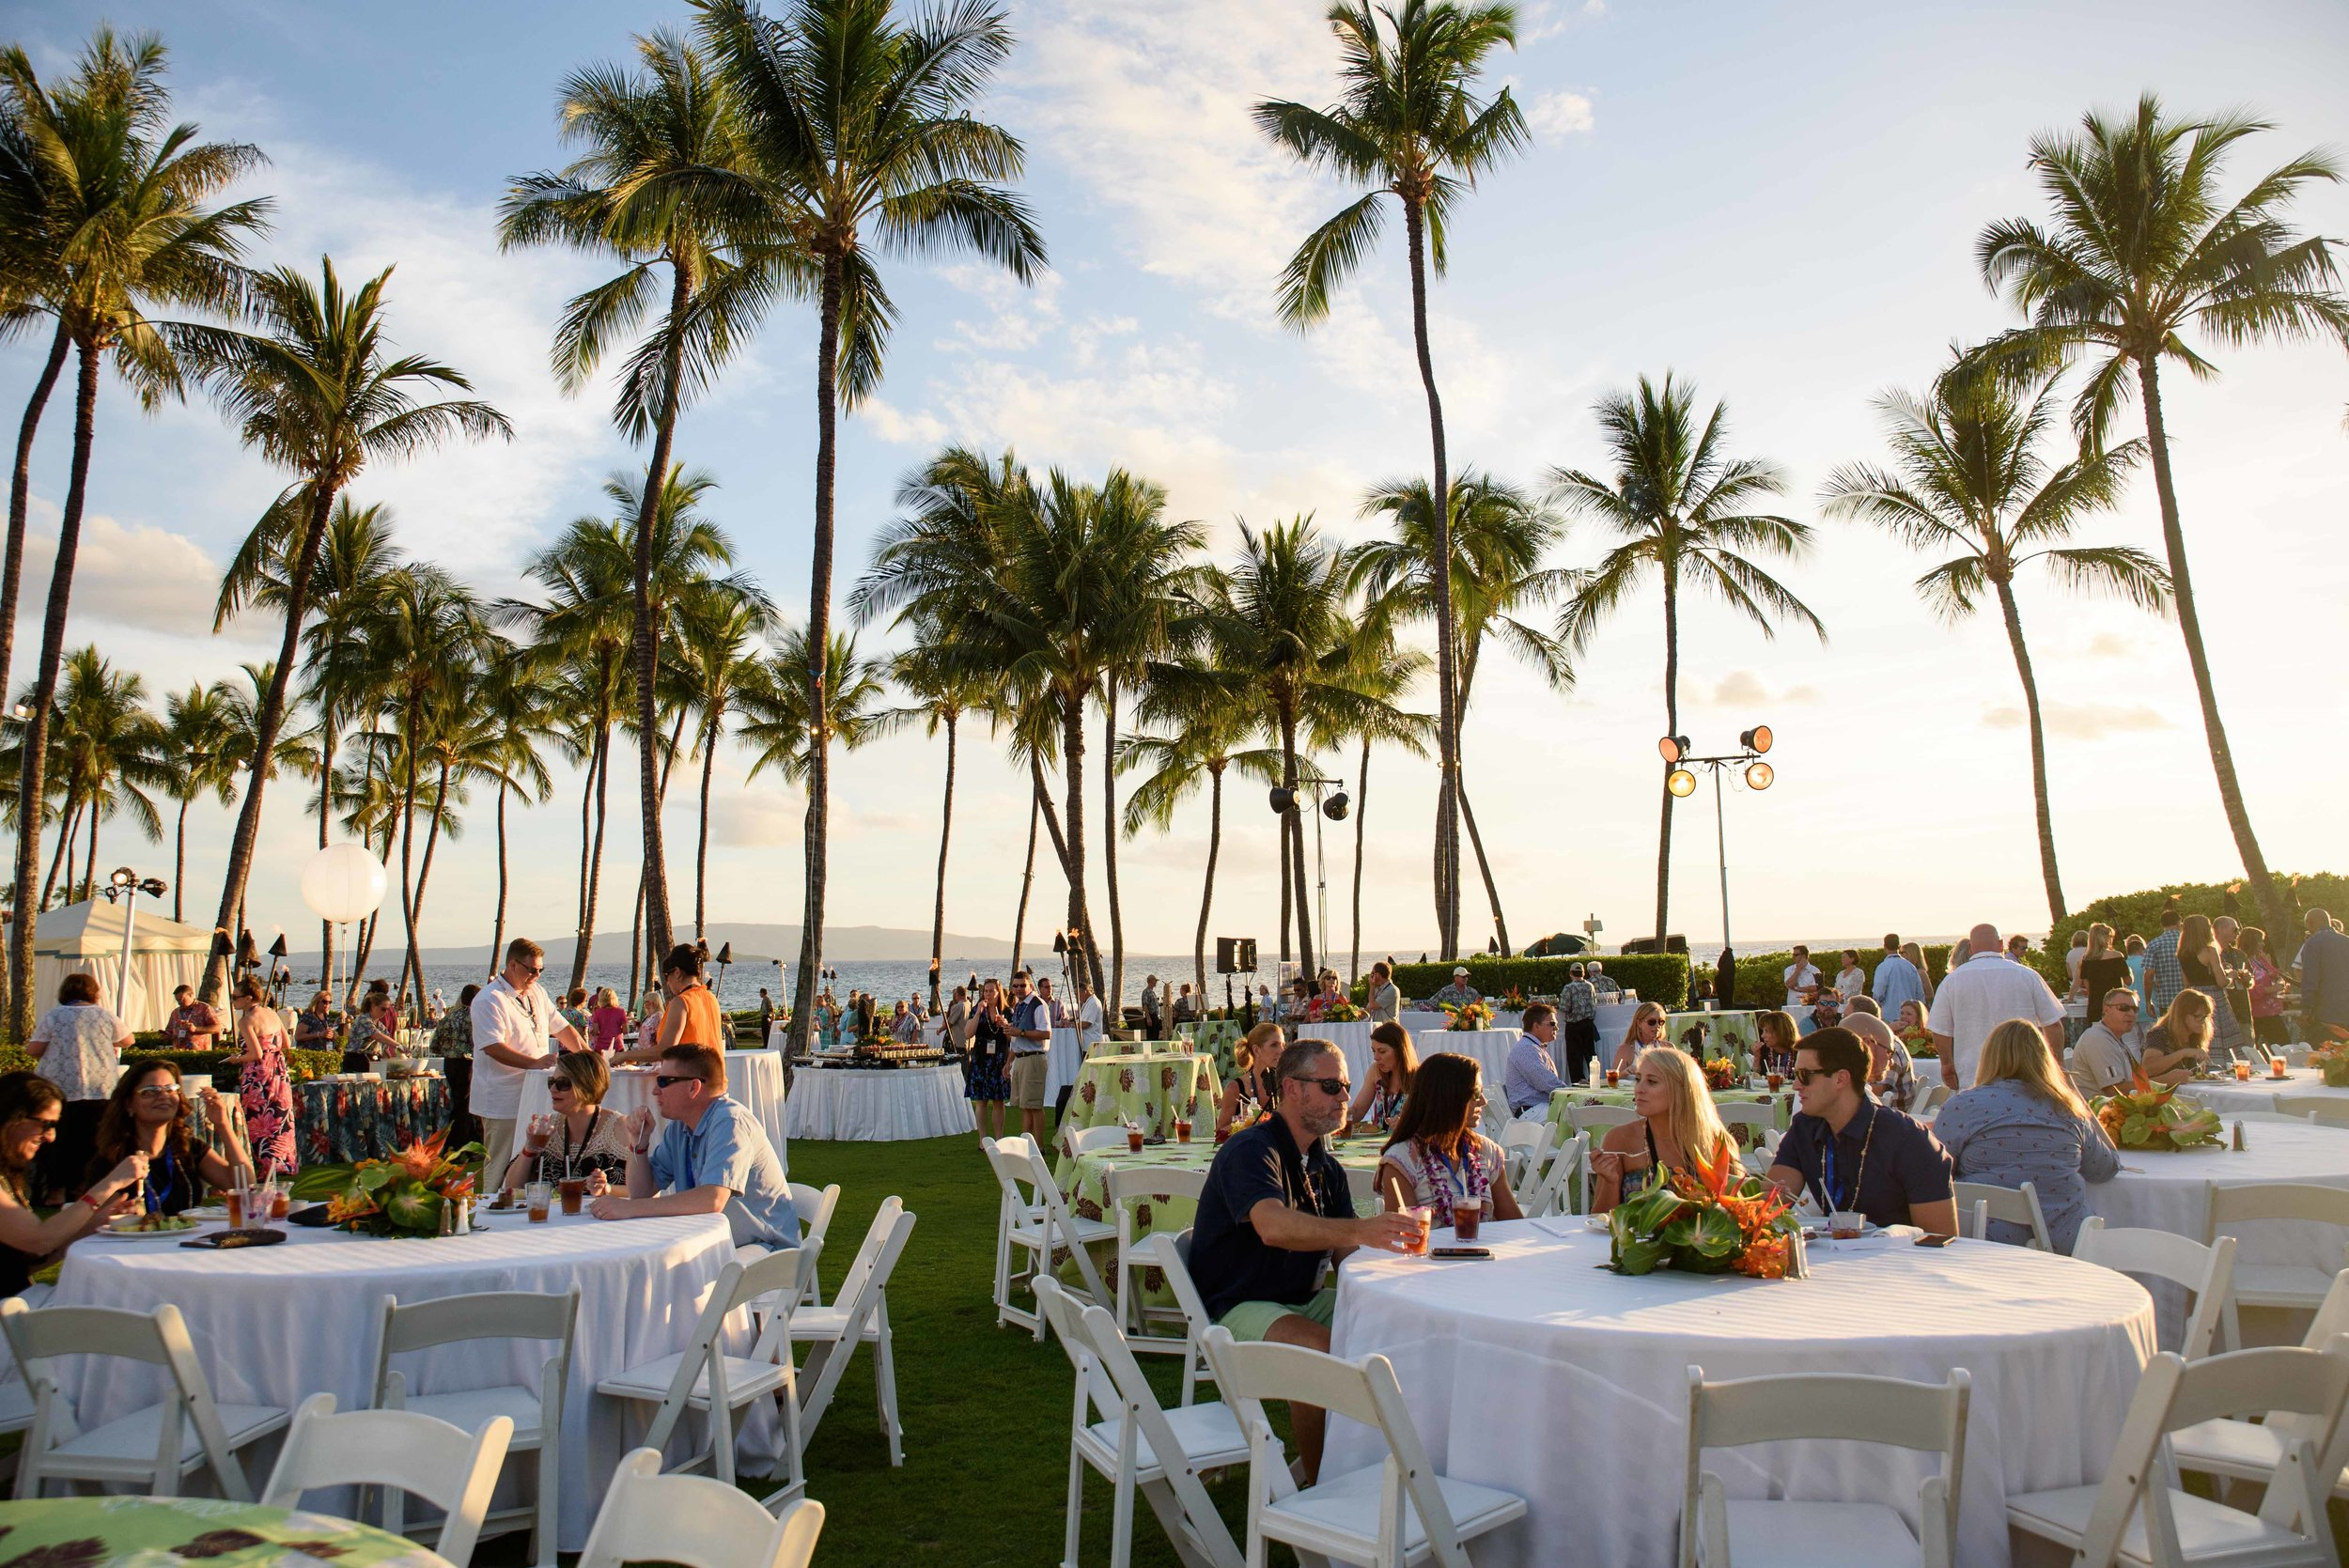 WelcomeReception90_KelliPricePhotography_TopPerformersGrandWaileaHI_May2017 copy.jpg